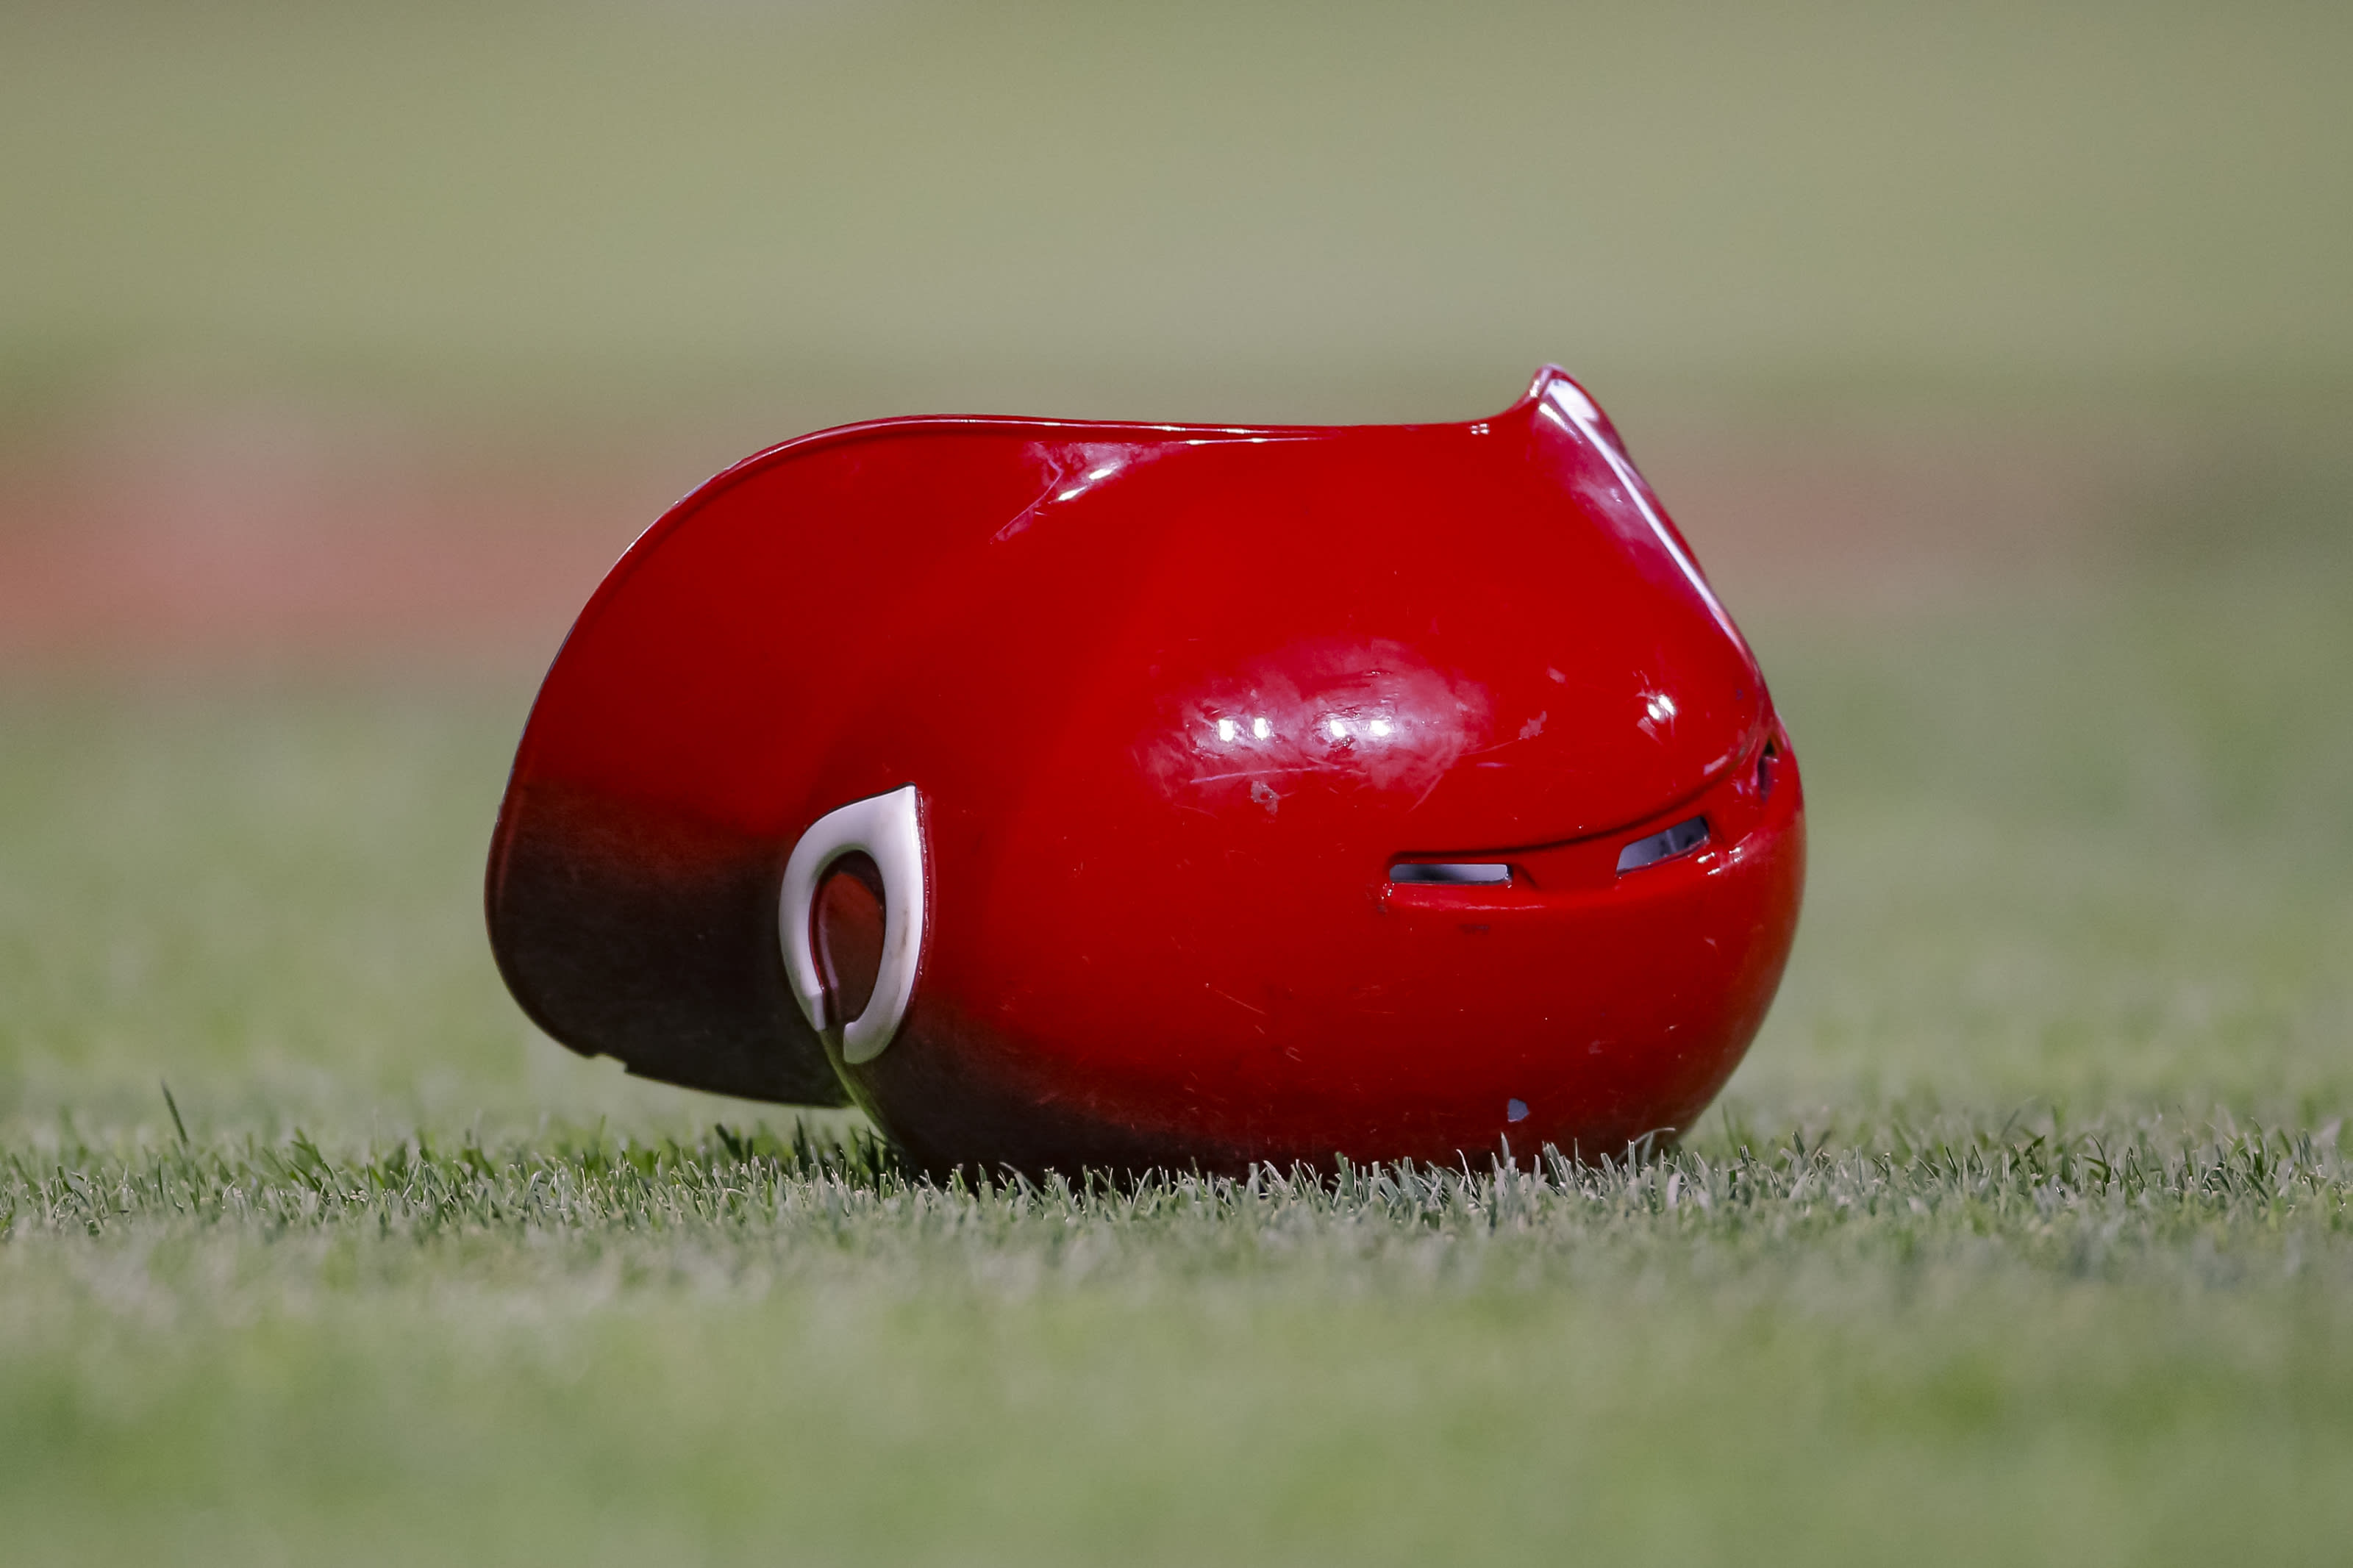 A Cincinnati Reds helmet is seen on the ground during the game.